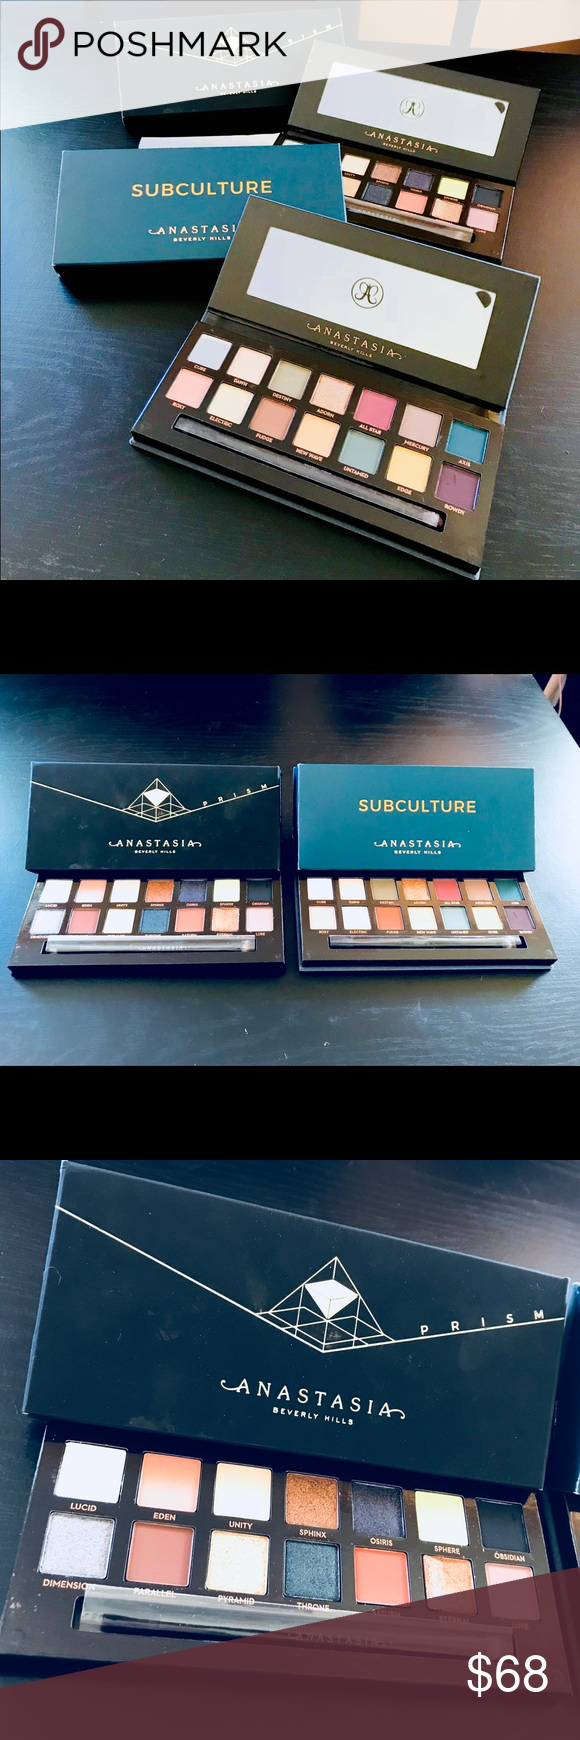 Pin on abh subculture palette